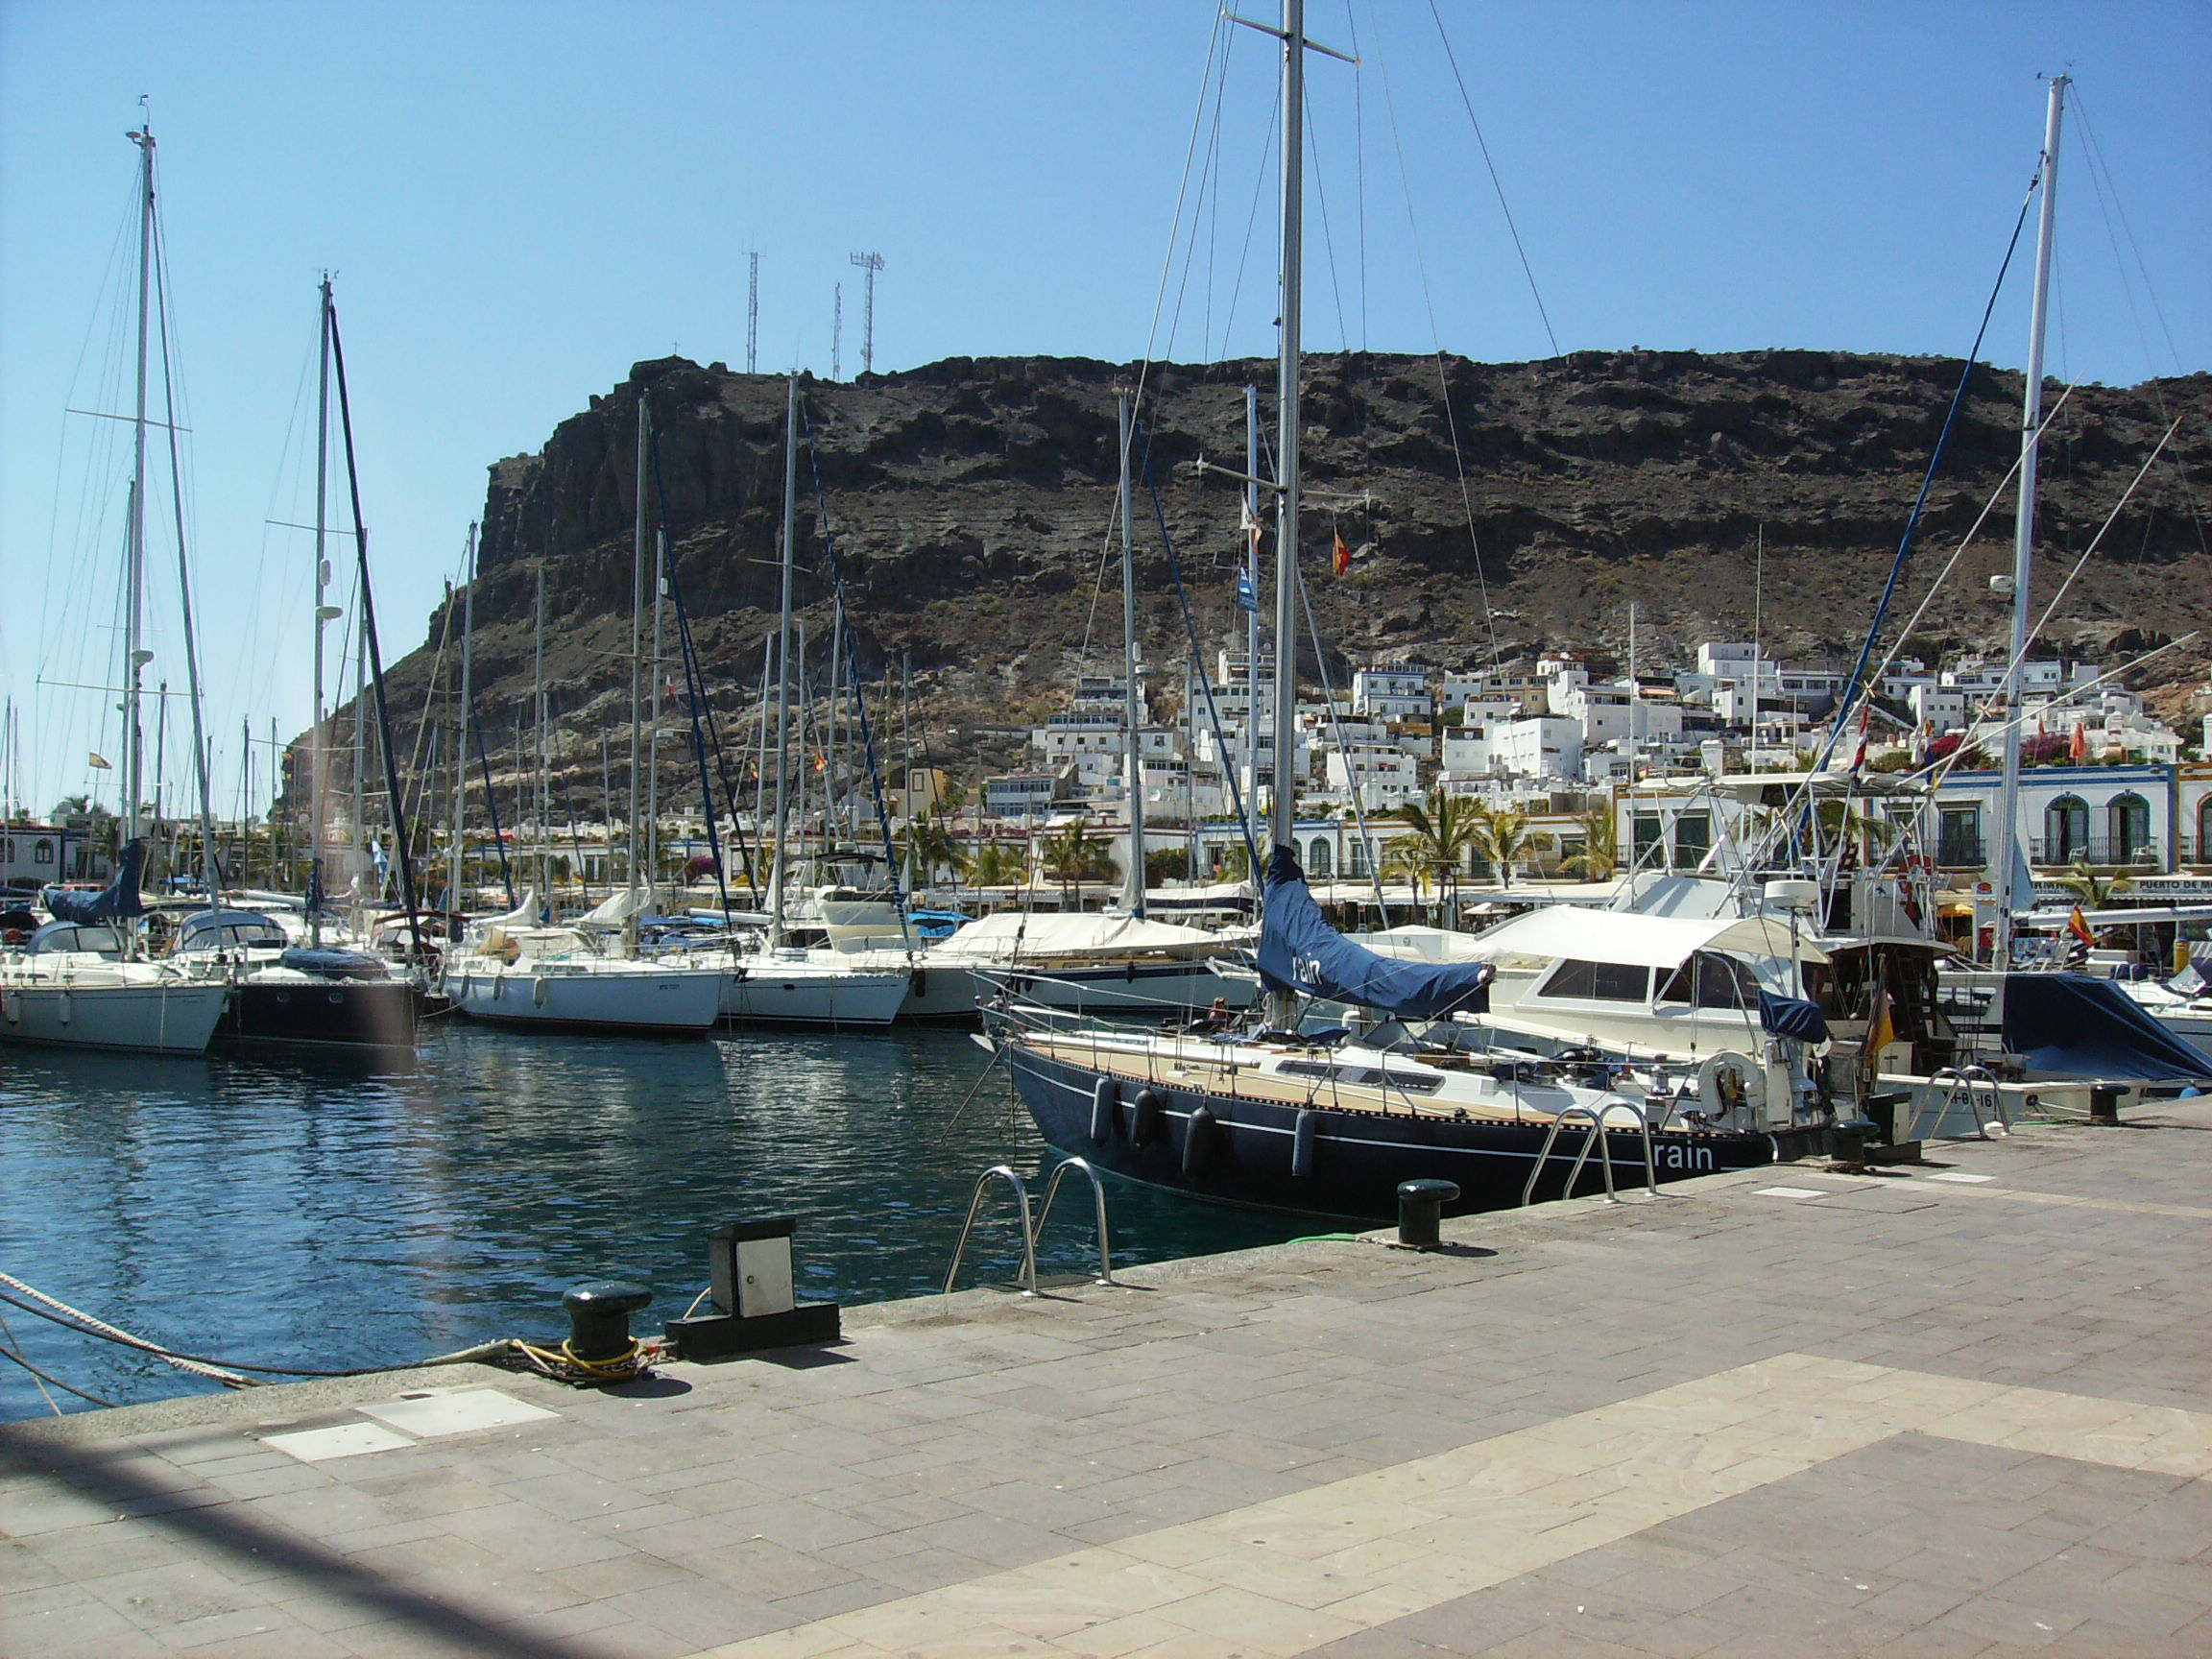 Puerto de Mogán: Known as the Venice of Gran Canaria